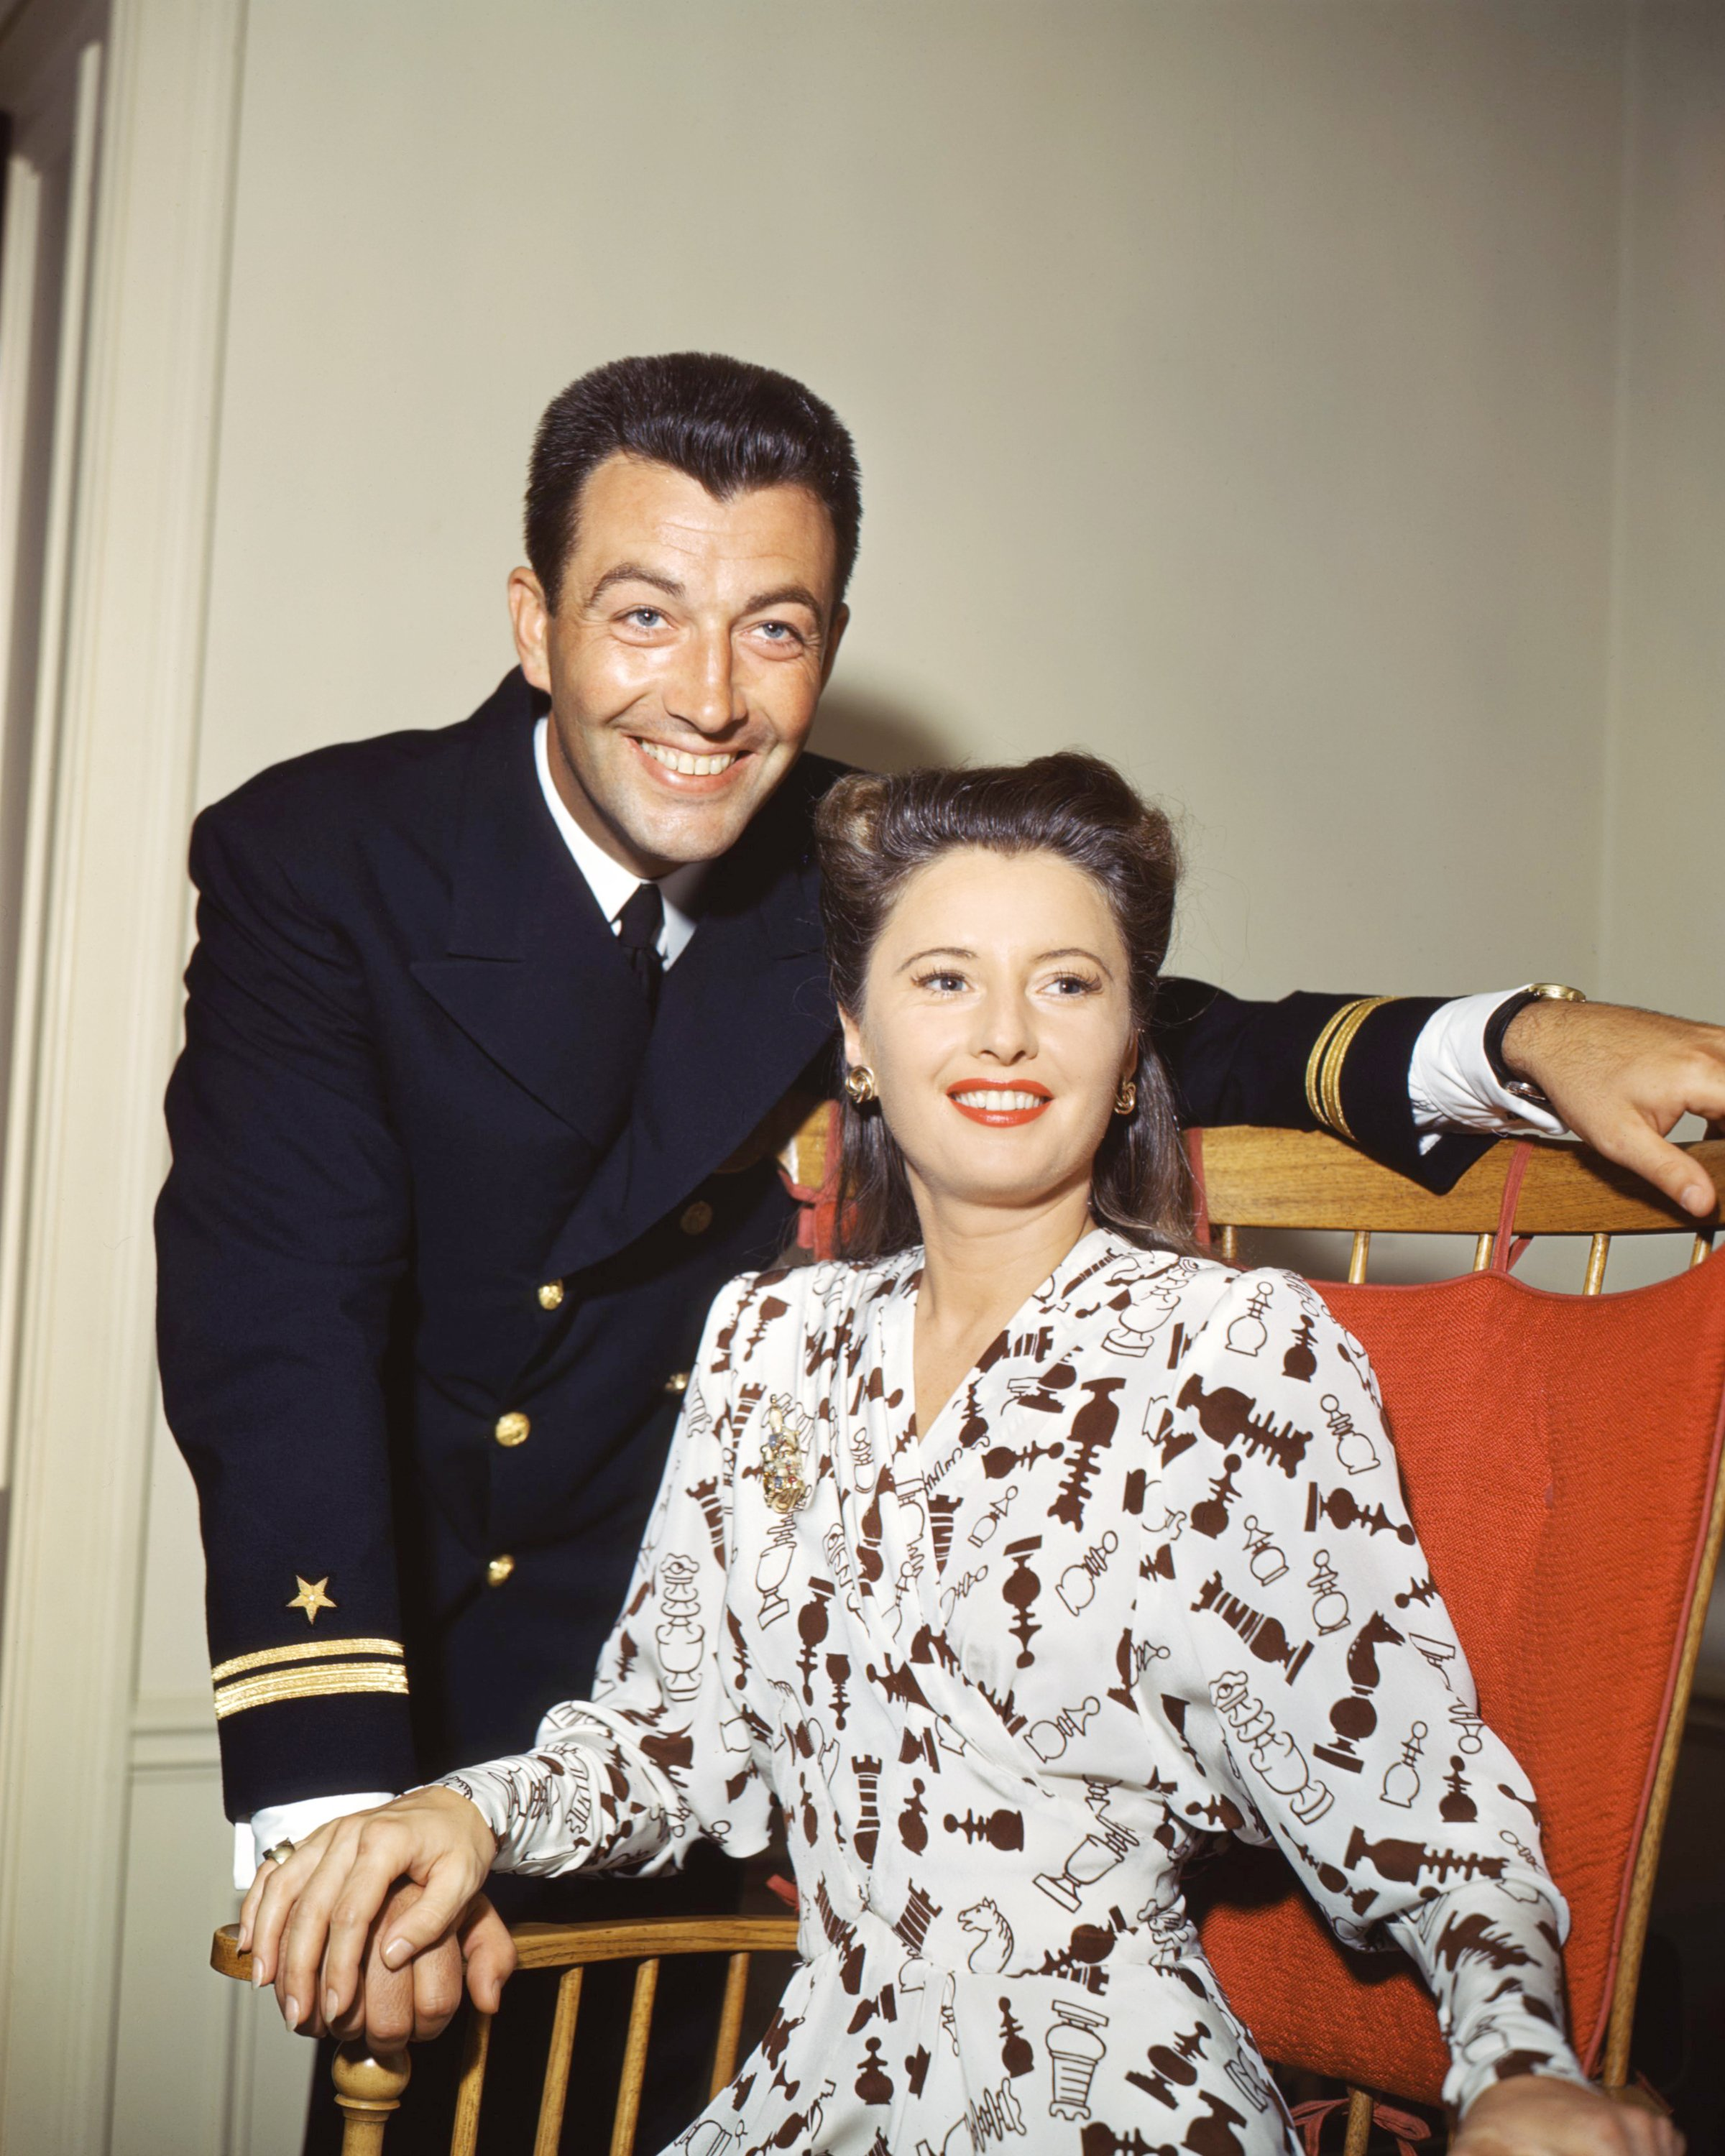 American actors Robert Taylor (1911 - 1969) and his wife Barbara Stanwyck (1907 - 1990), circa 1945. Taylor is wearing the uniform of the United States Naval Air Corps. | Source: Getty Images